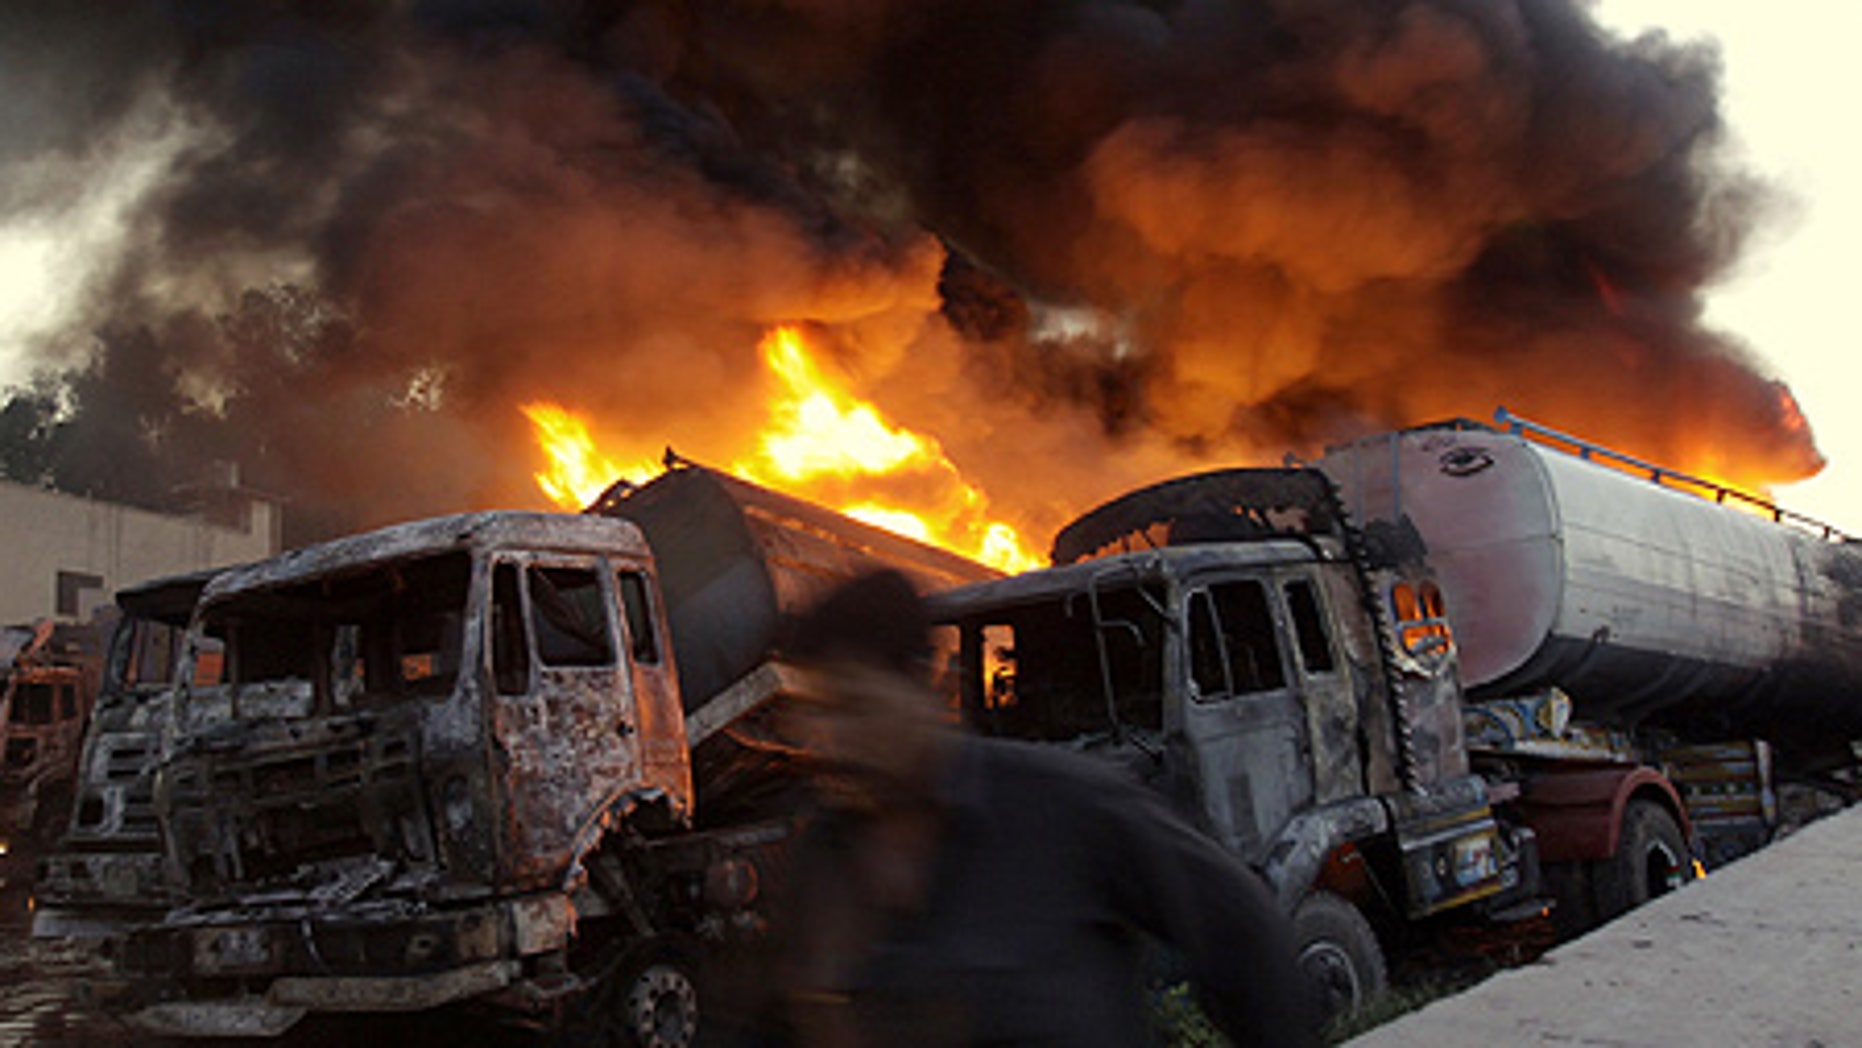 Apr. 23: Dozens of militants armed with guns and gasoline bombs attack NATO's truck terminal in Peshawar, Pakistan.